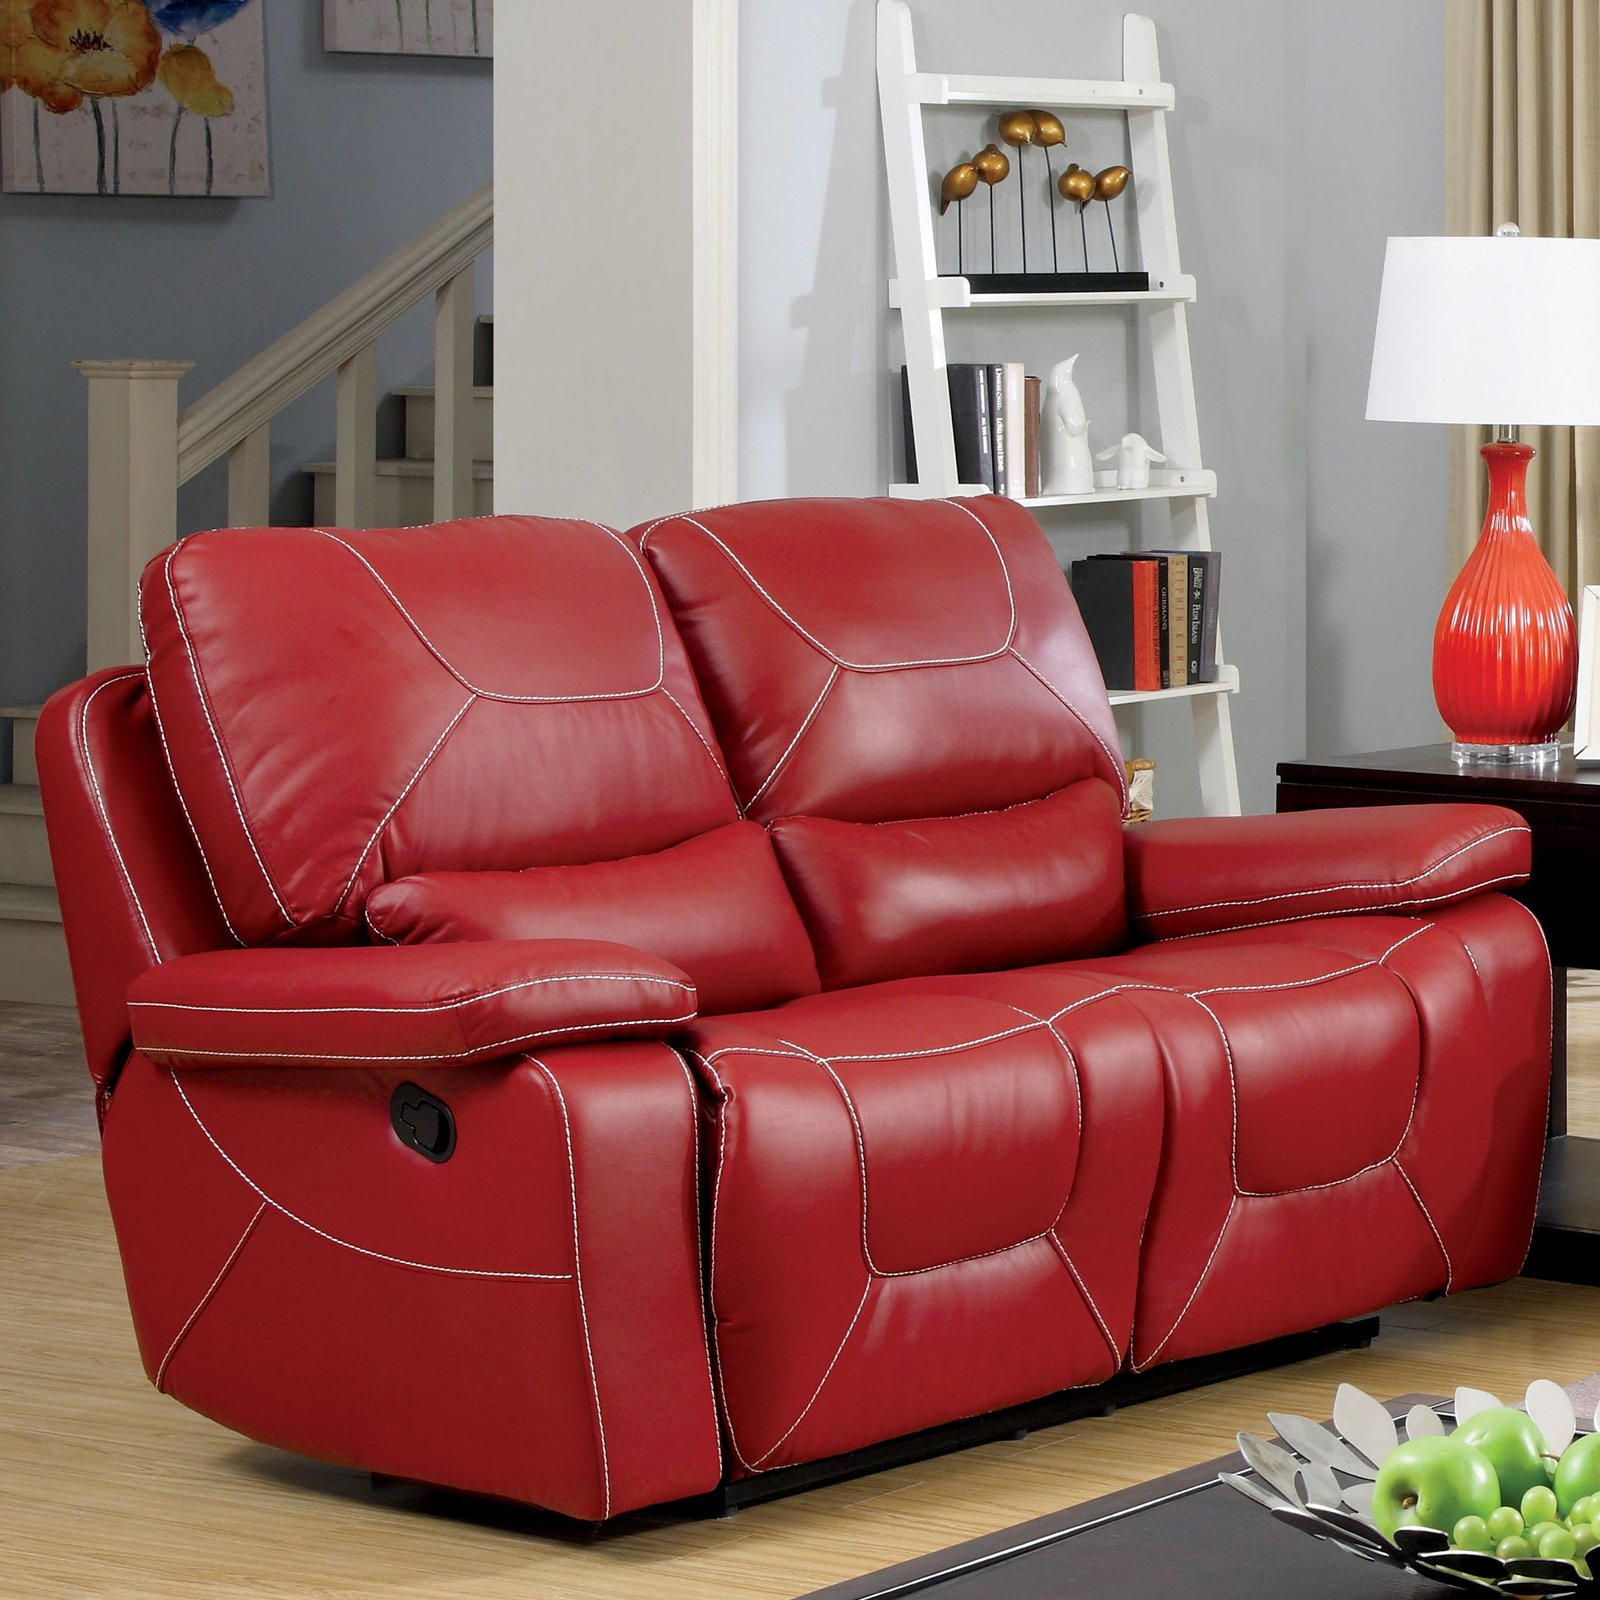 Furniture of America Knightly Recliner Loveseat